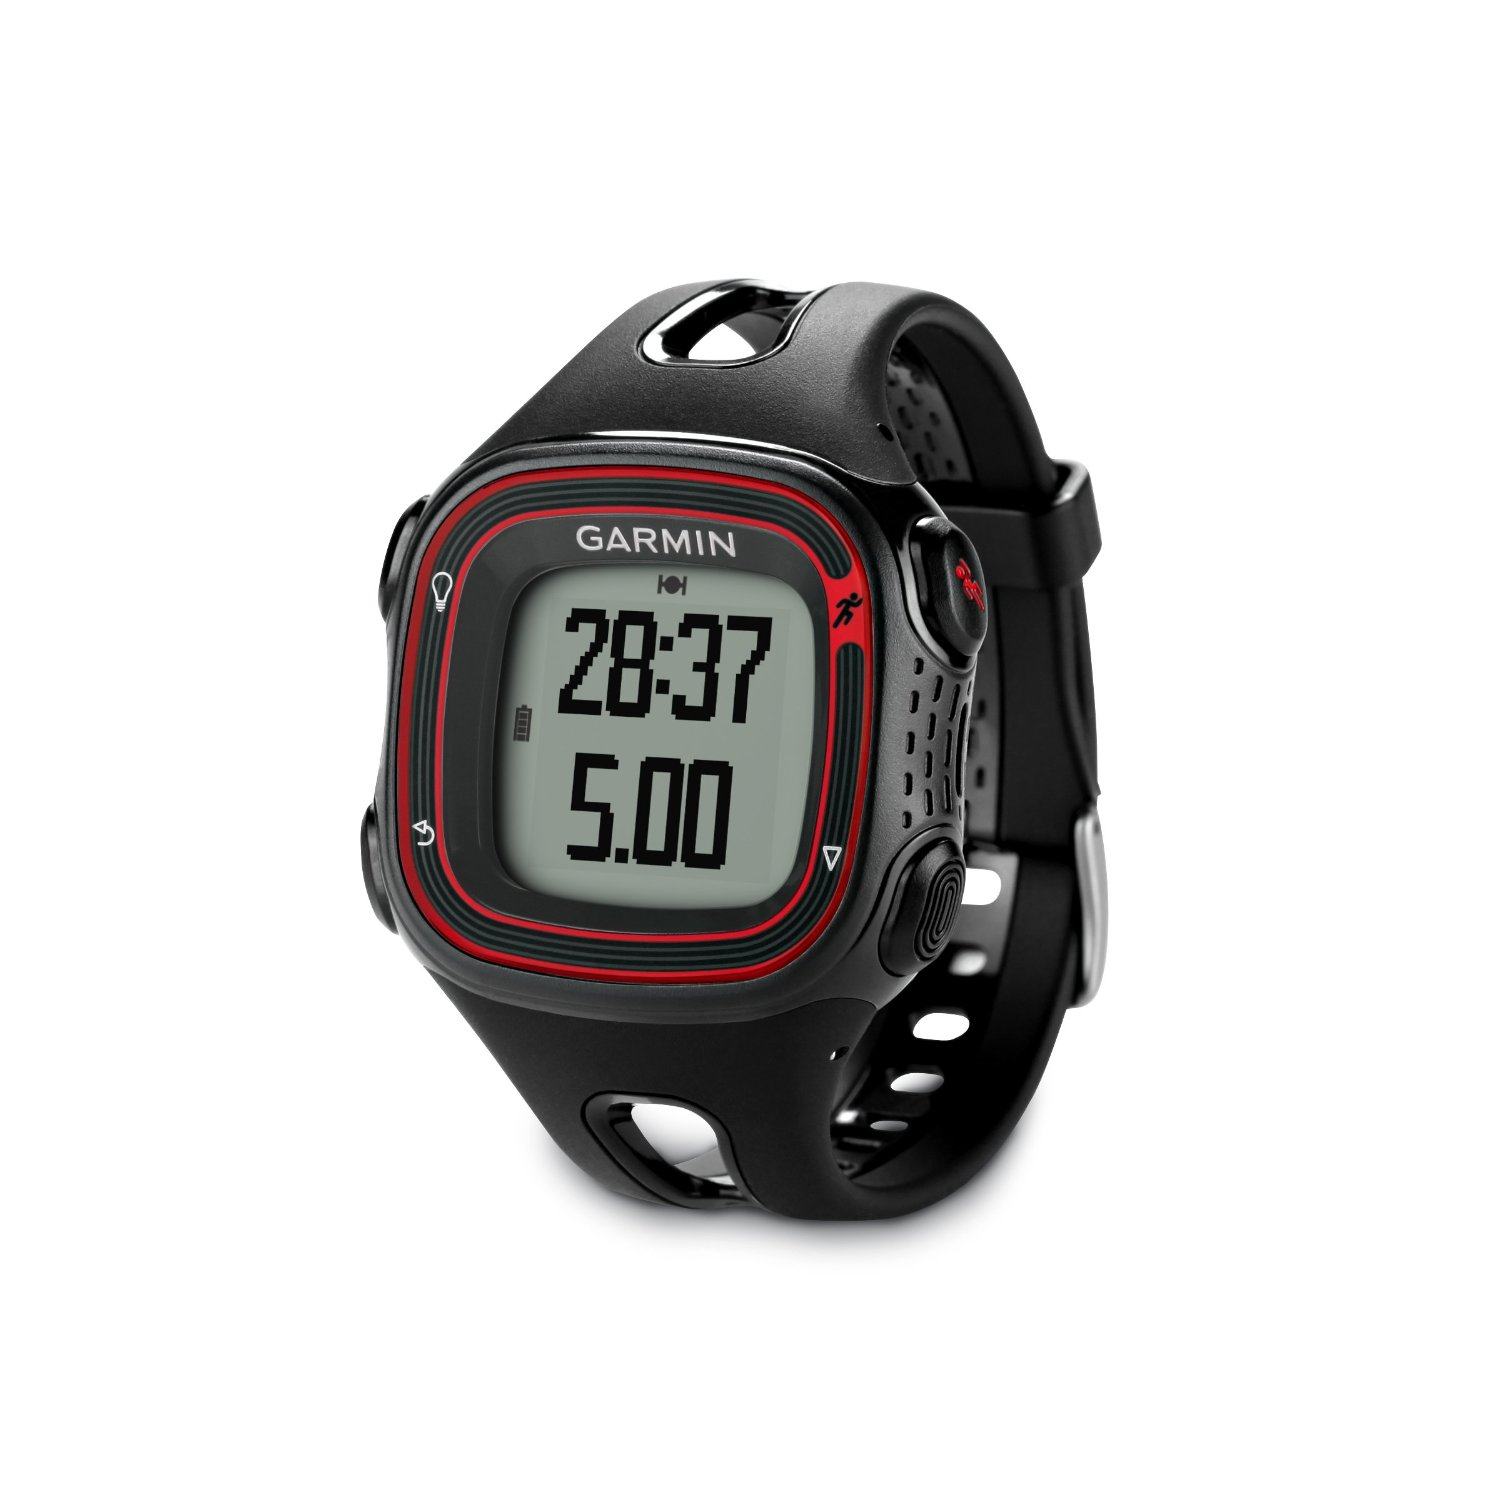 garmin forerunner 10 gps watch review sporting goods. Black Bedroom Furniture Sets. Home Design Ideas